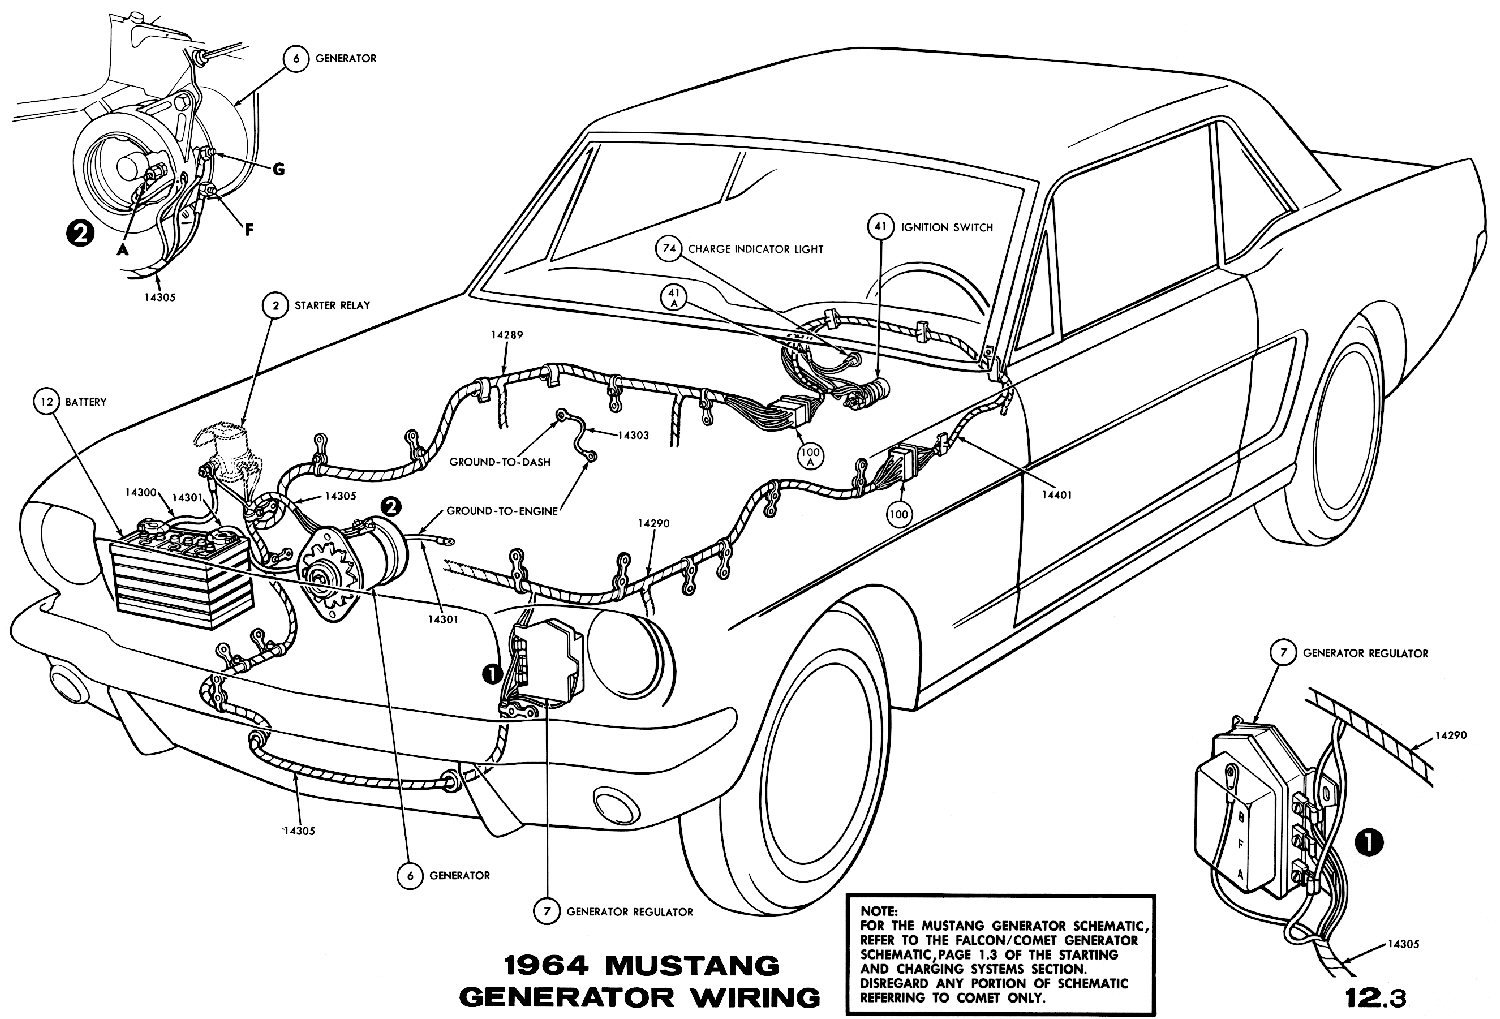 1964f 1964 mustang wiring diagrams average joe restoration 1966 mustang starter solenoid wiring diagram at bayanpartner.co